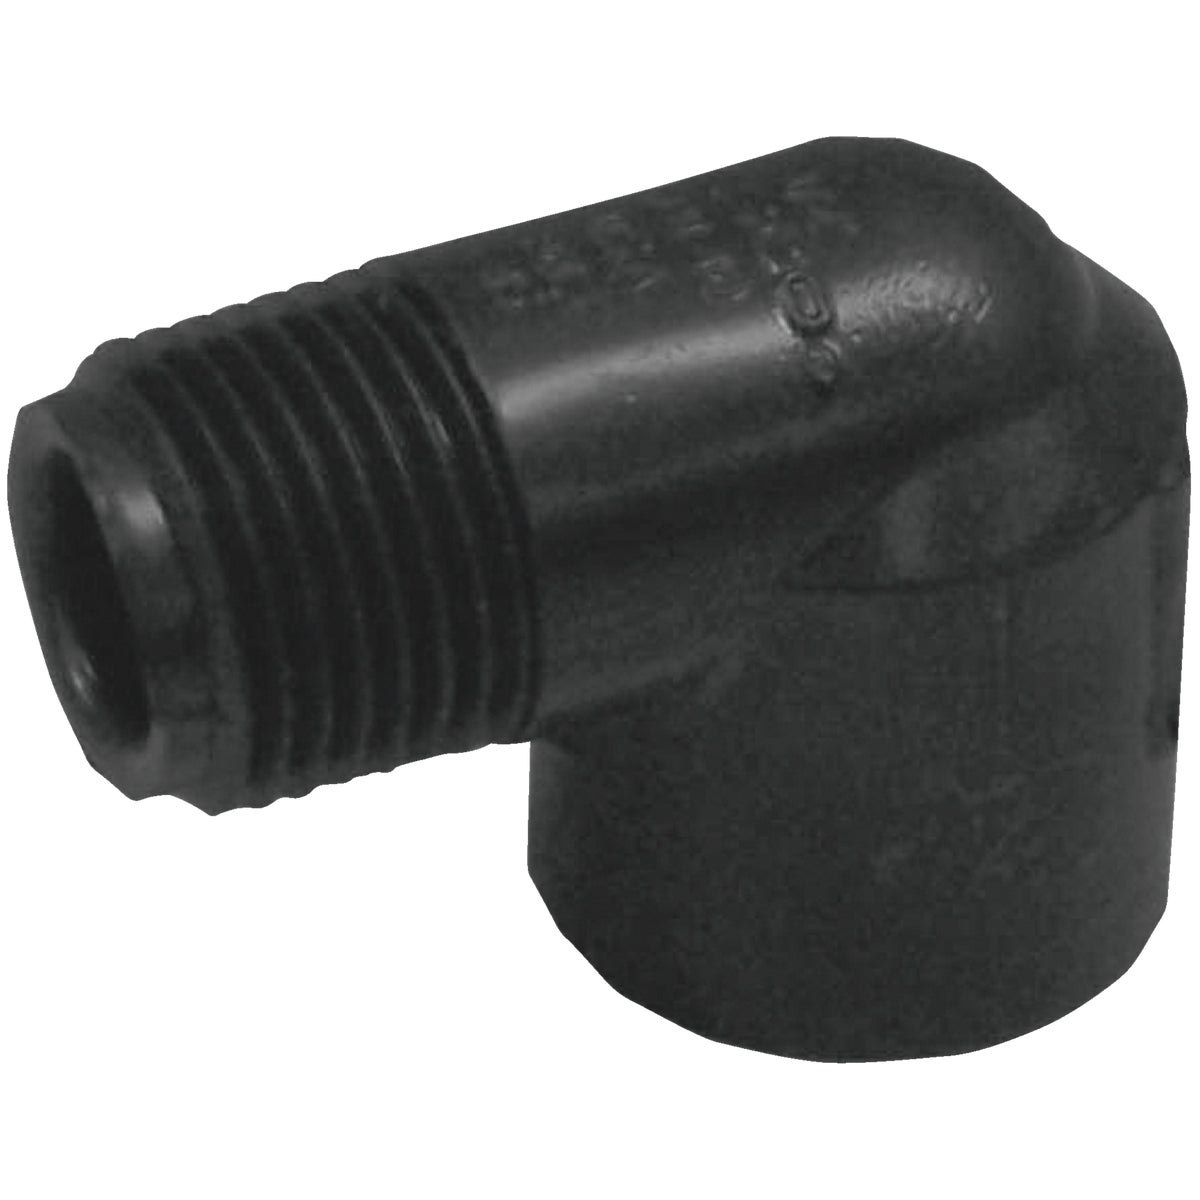 "1/2""MARL MXF 90STR ELBOW - M32705 by Genova Inc"